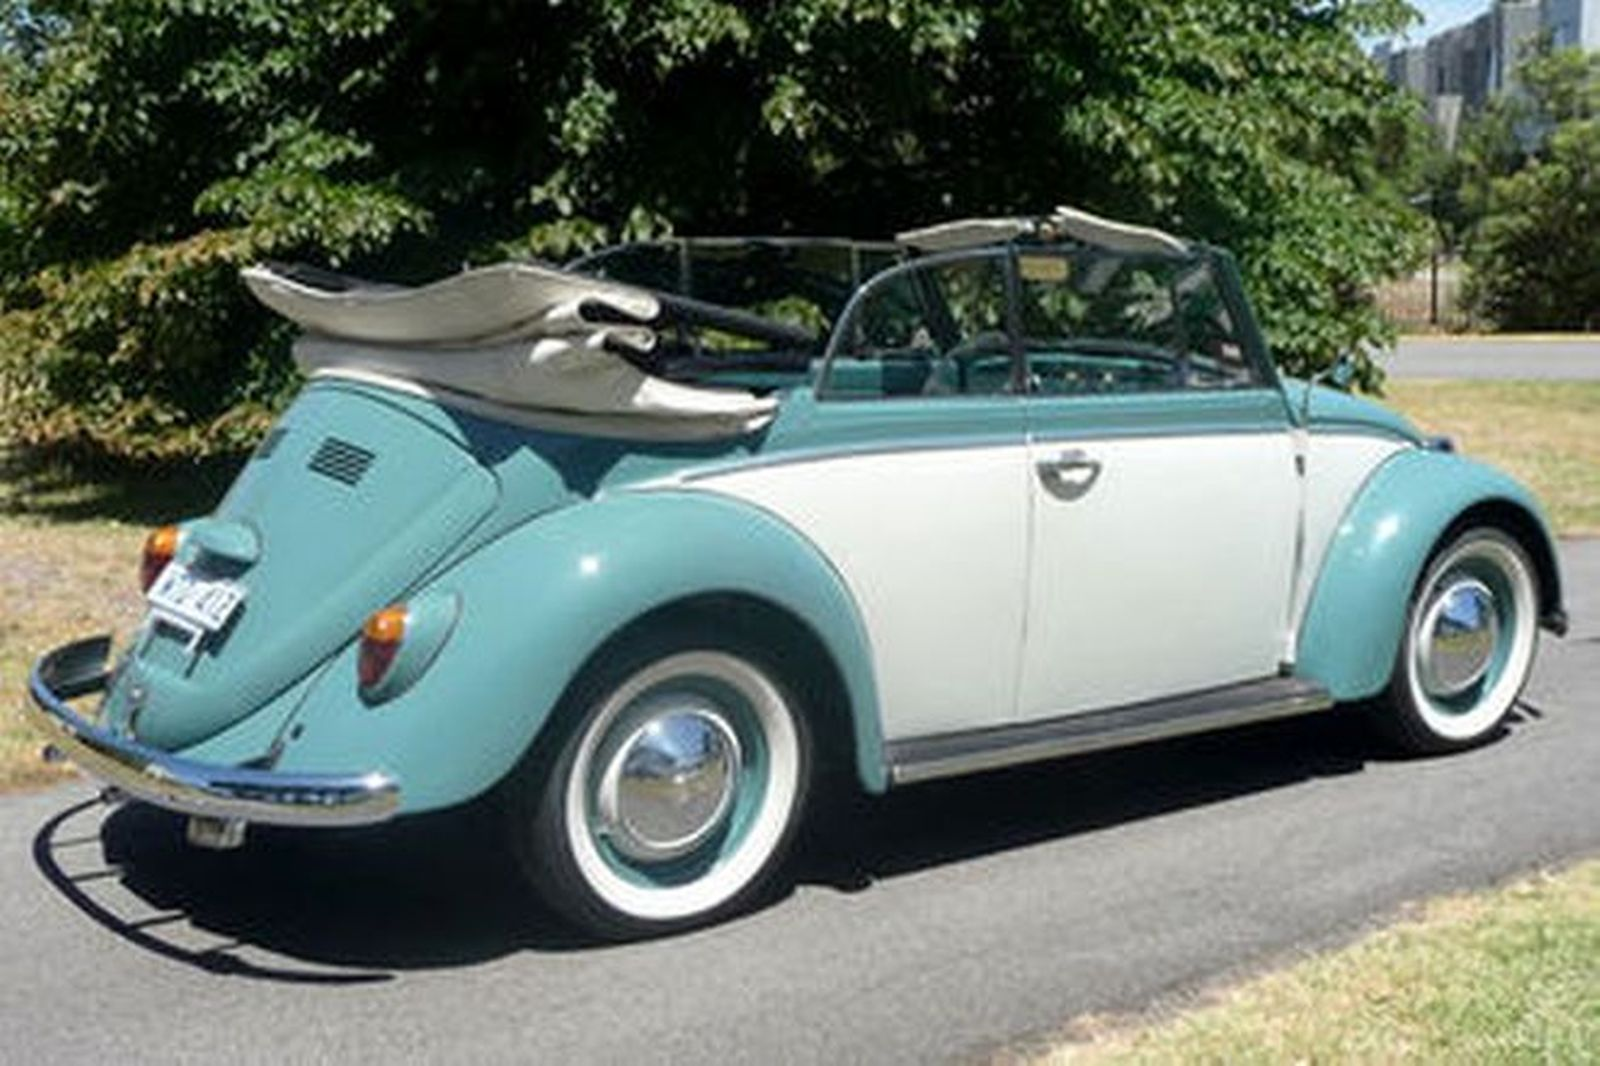 Volkswagen Beetle 'Karmann' Convertible (LHD) Auctions - Lot 3 - Shannons